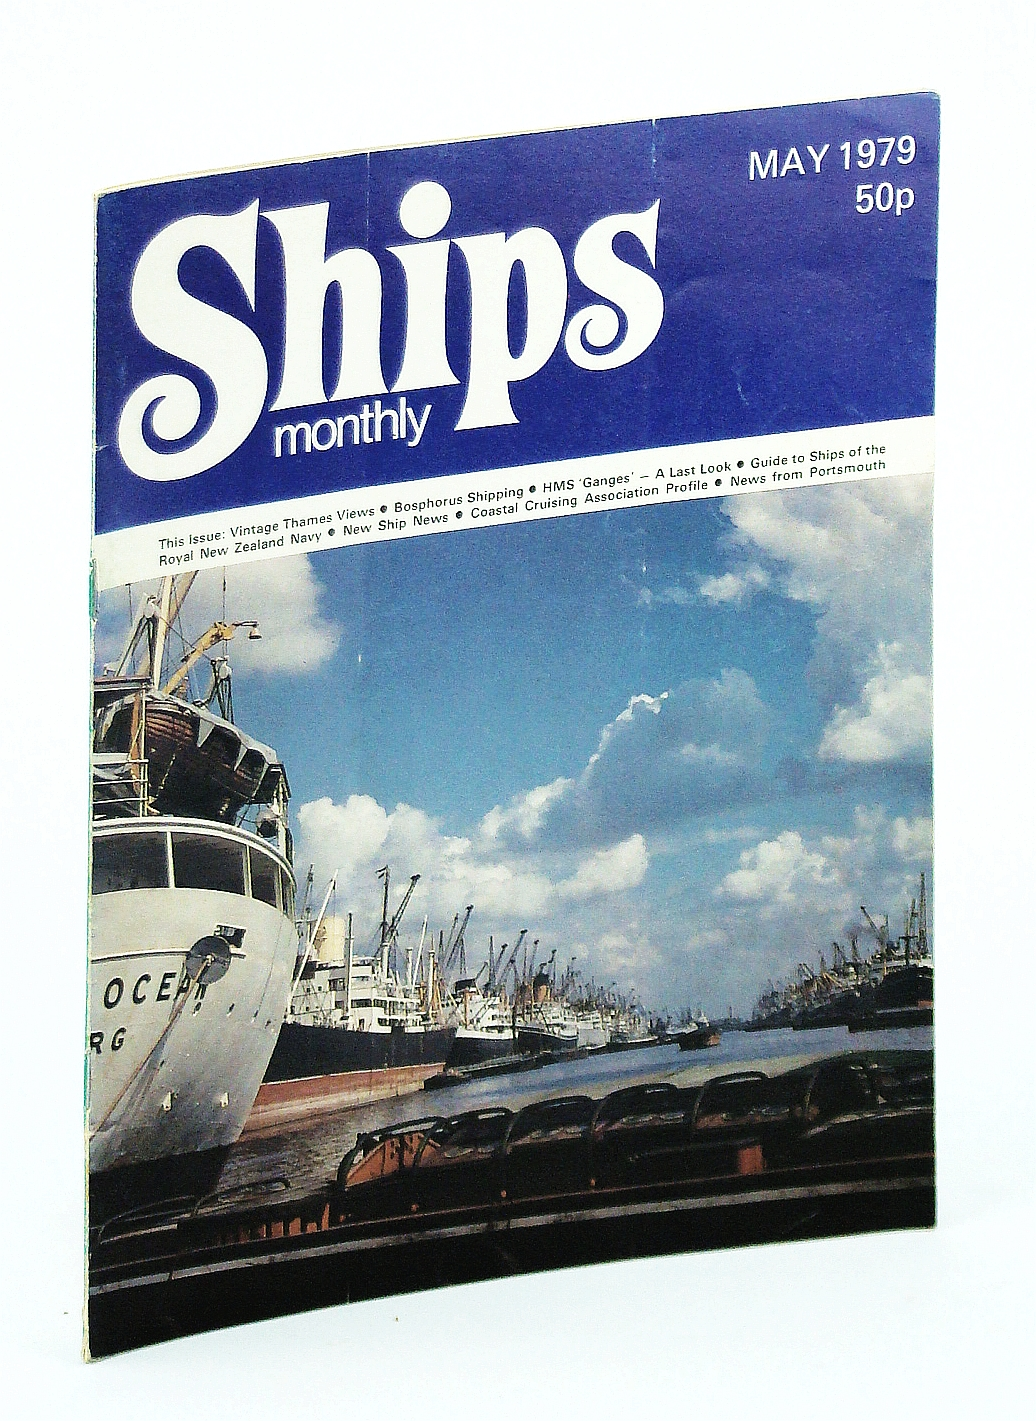 Image for Ships Monthly - The Magazine For Shiplovers Ashore and Afloat, May 1979: HMS 'Ganges' - A Last Look